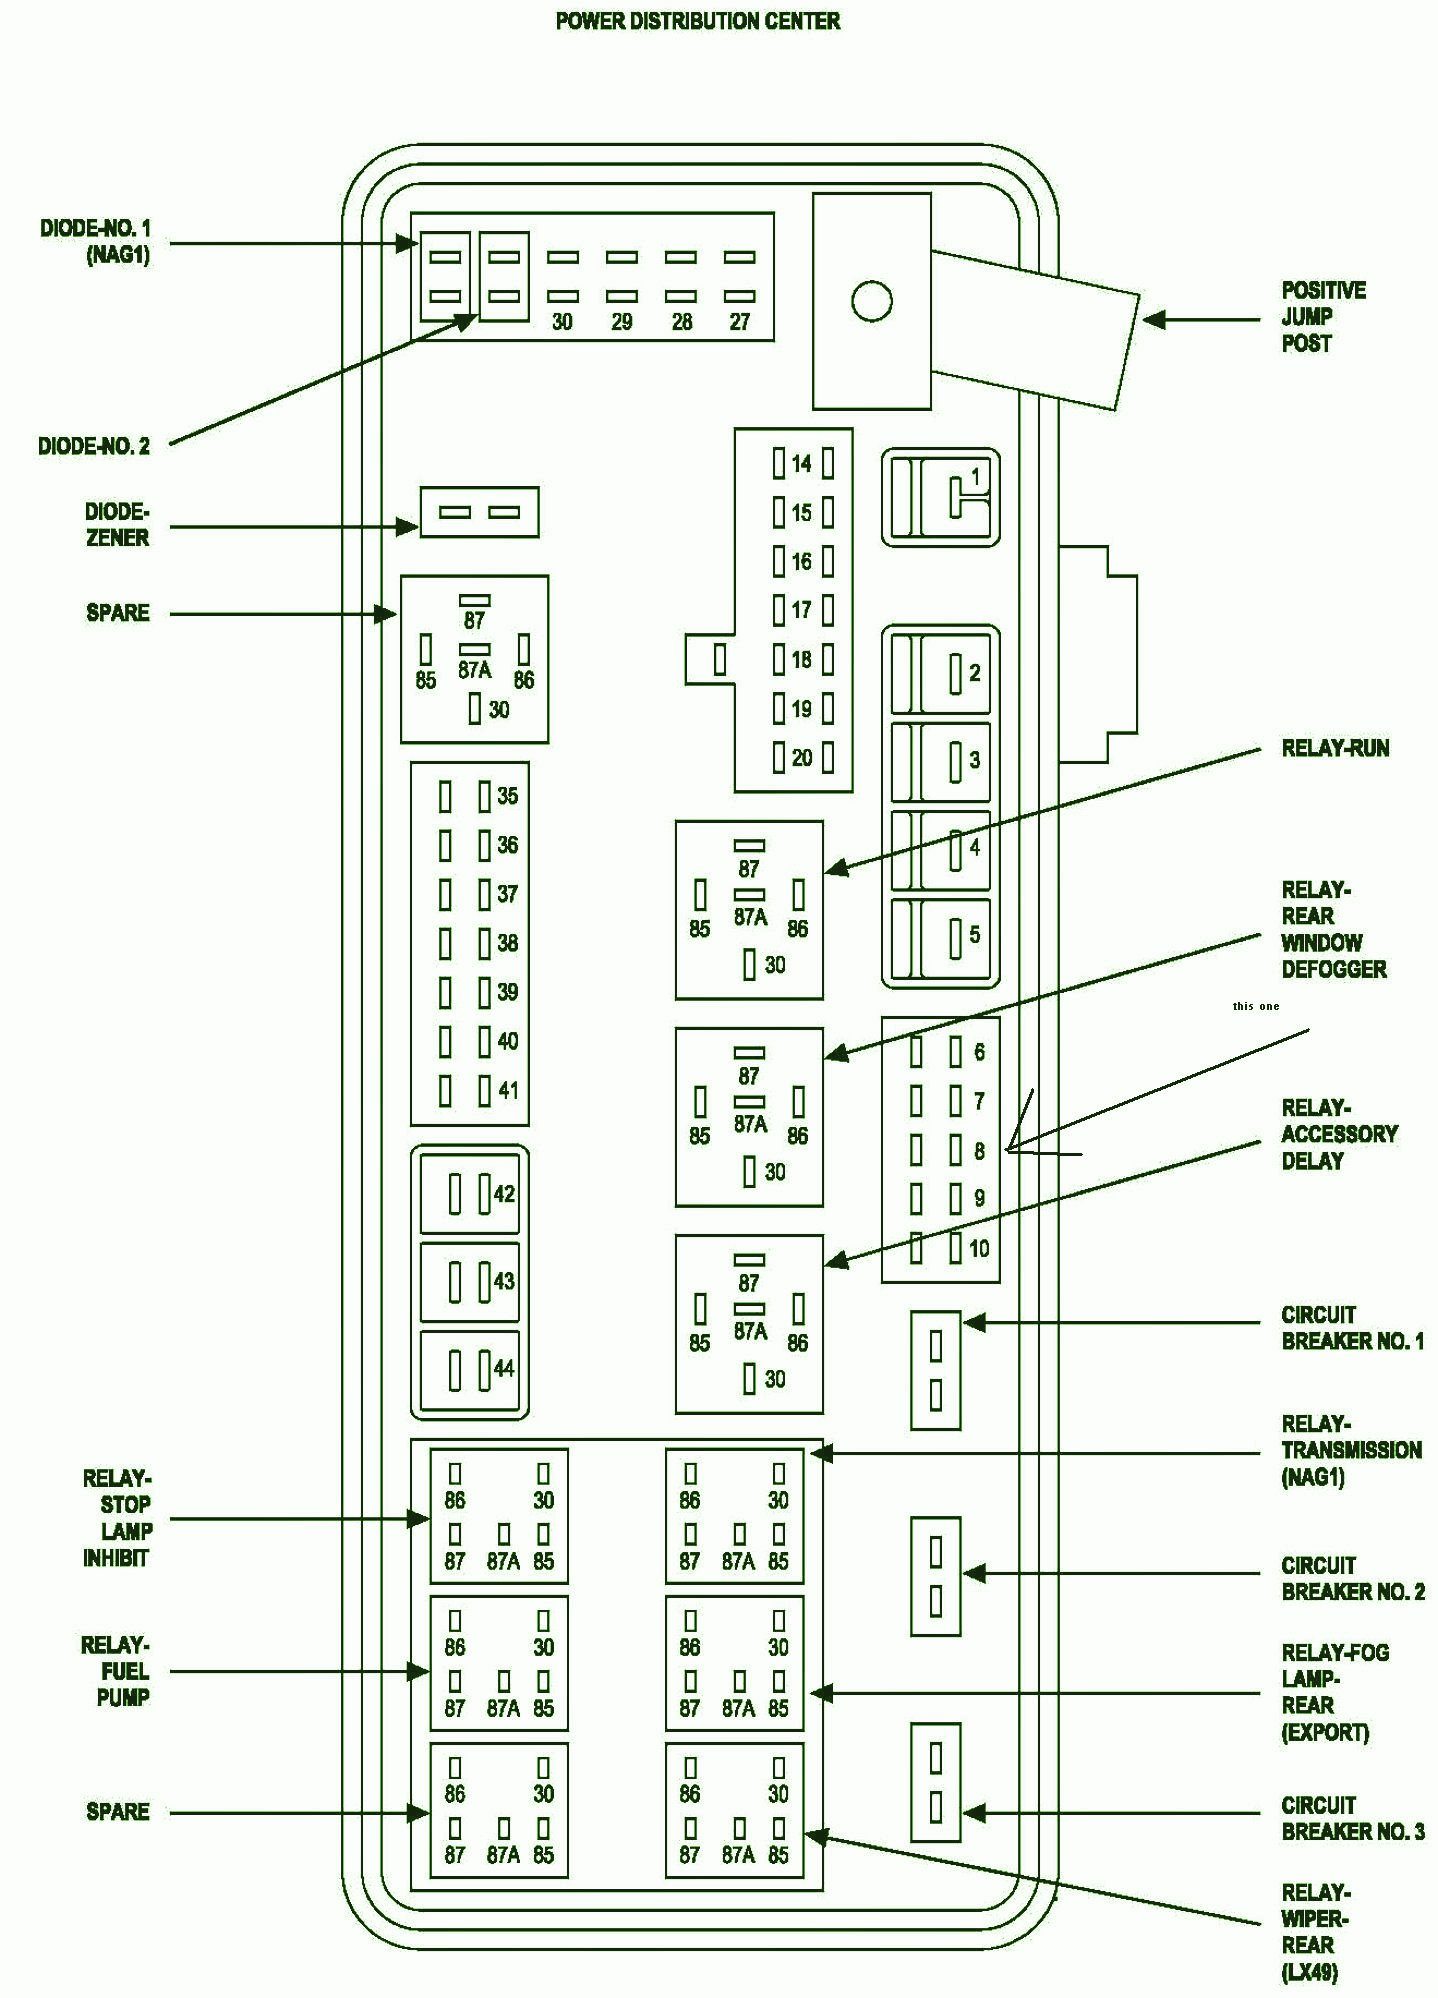 Dodge Fuse Box Diagram 2006 Dodge Sprinter Dash - Chinese 150 Atv Wiring  Diagram For A - electrical-wiring.deco-doe3.decorresine.itWiring Diagram Resource